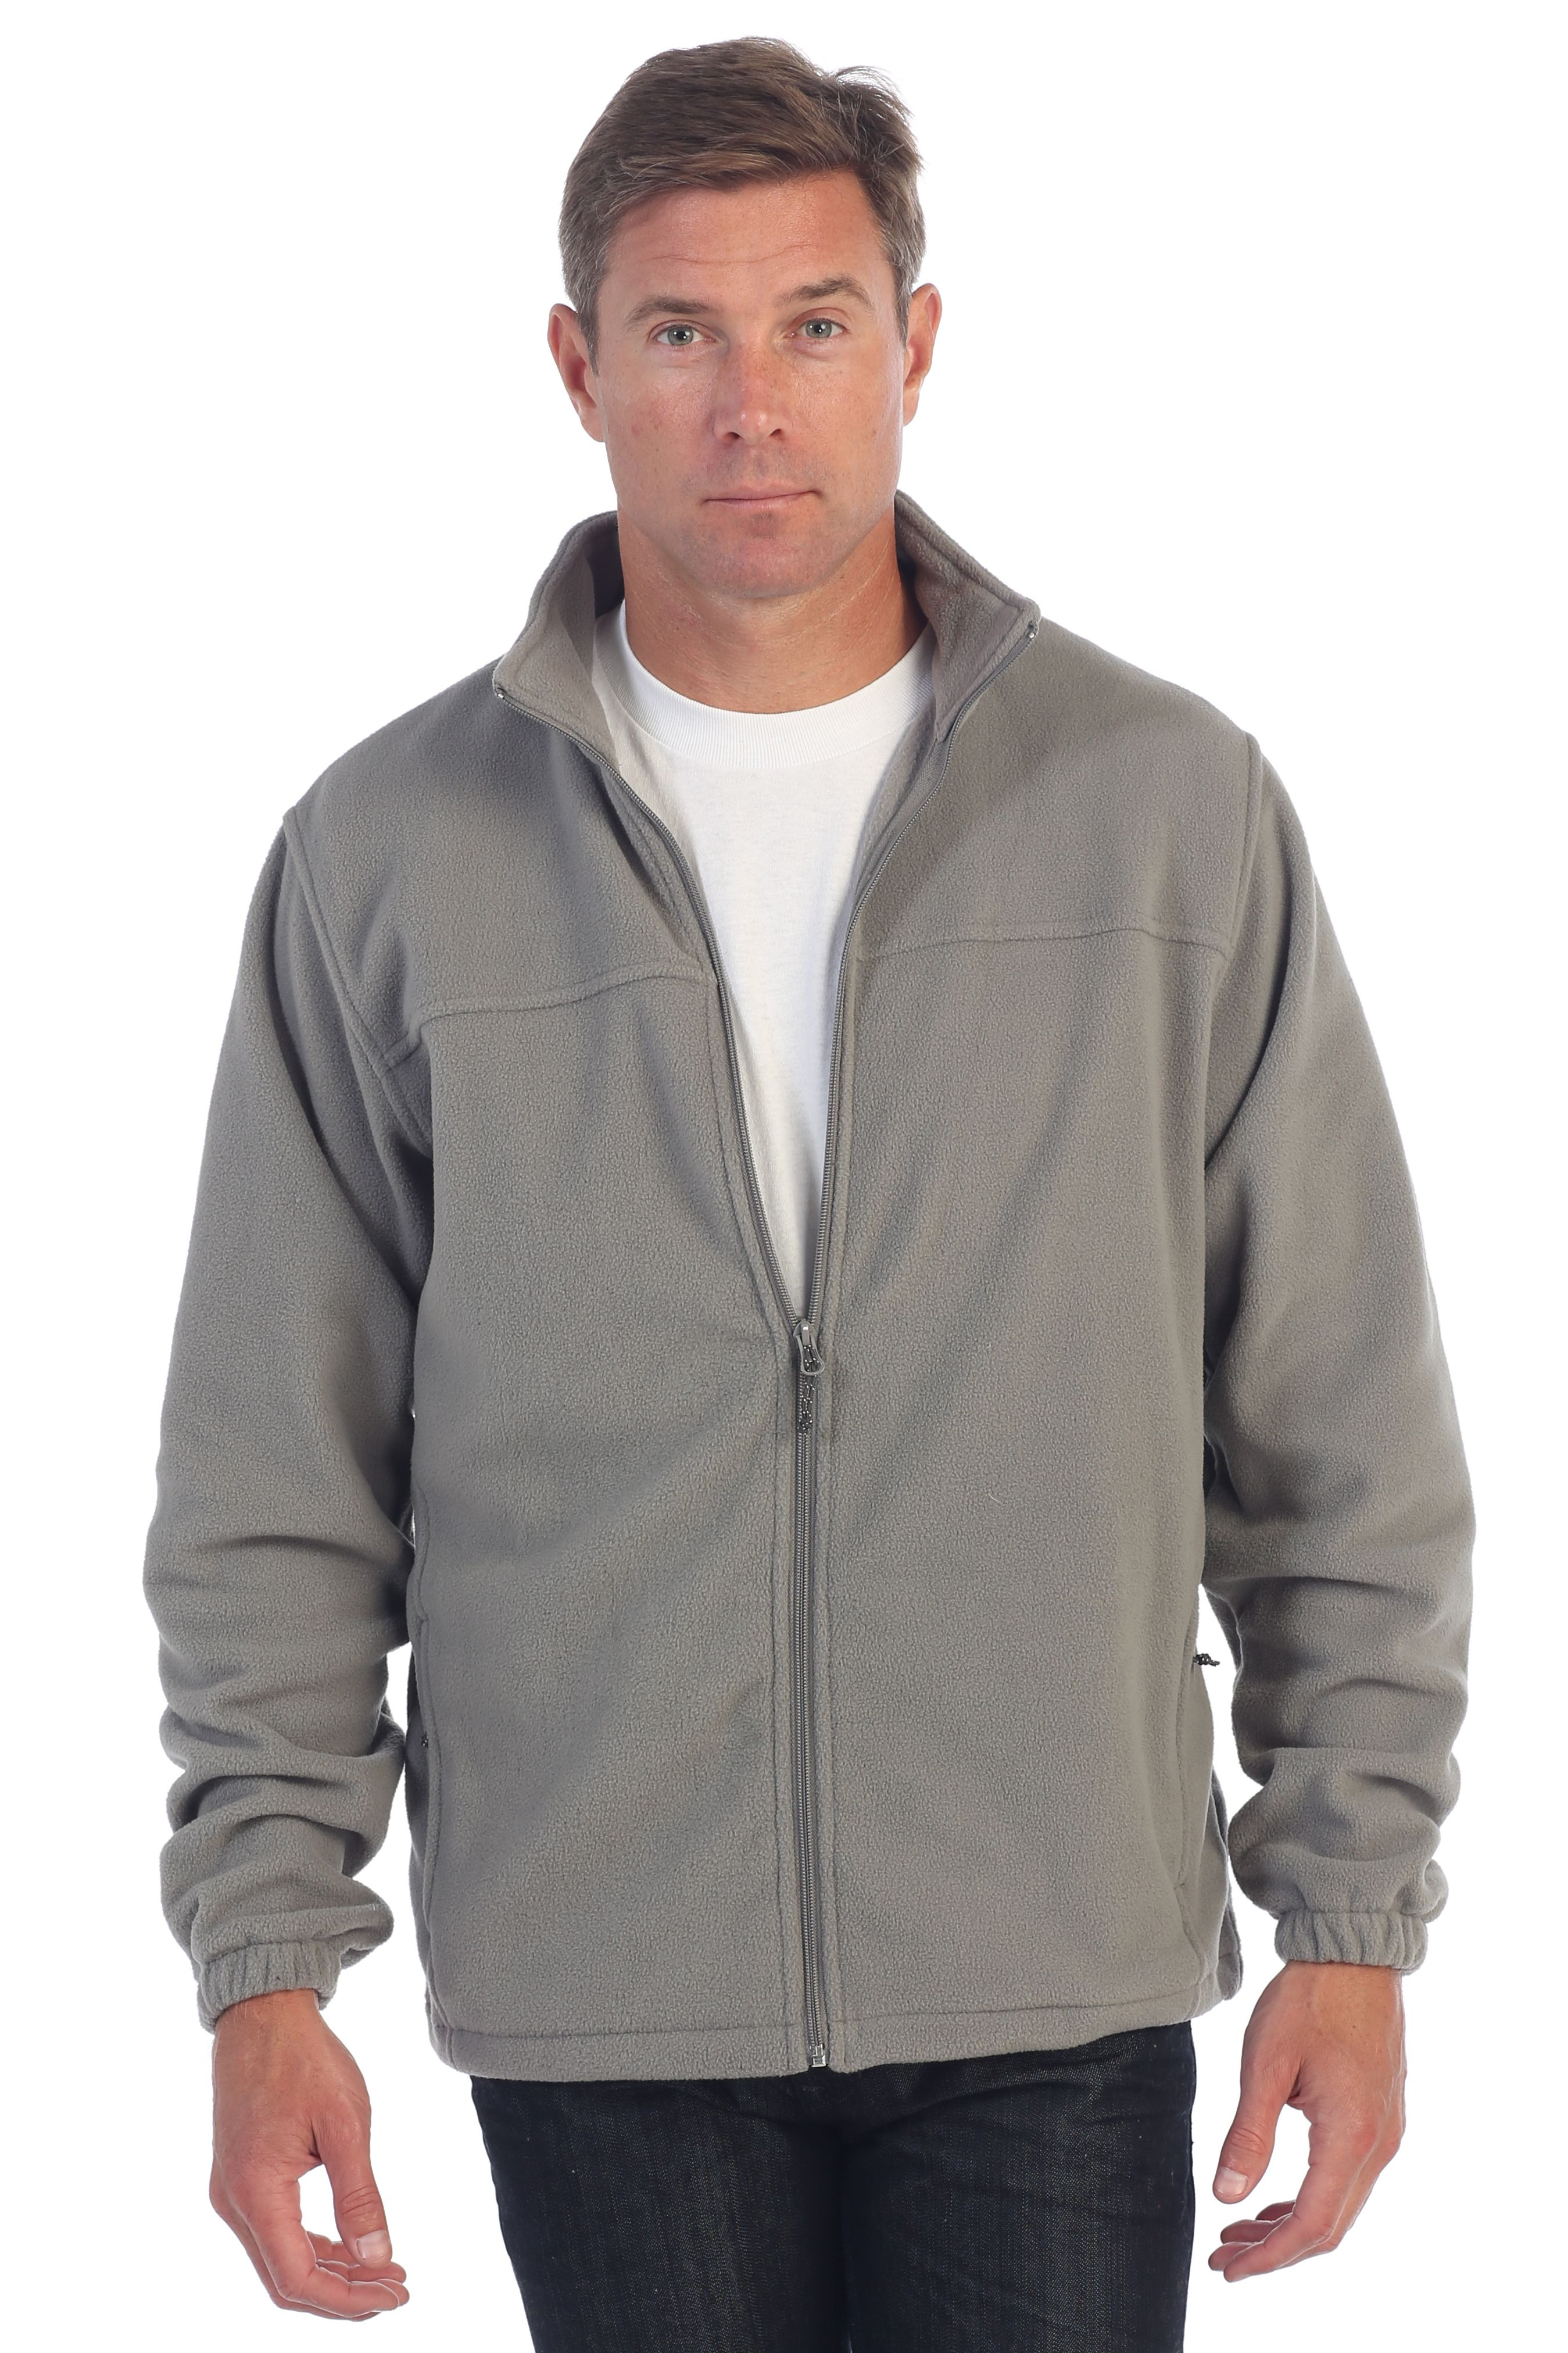 Gioberti Mens Full Zip Polar Fleece Jacket